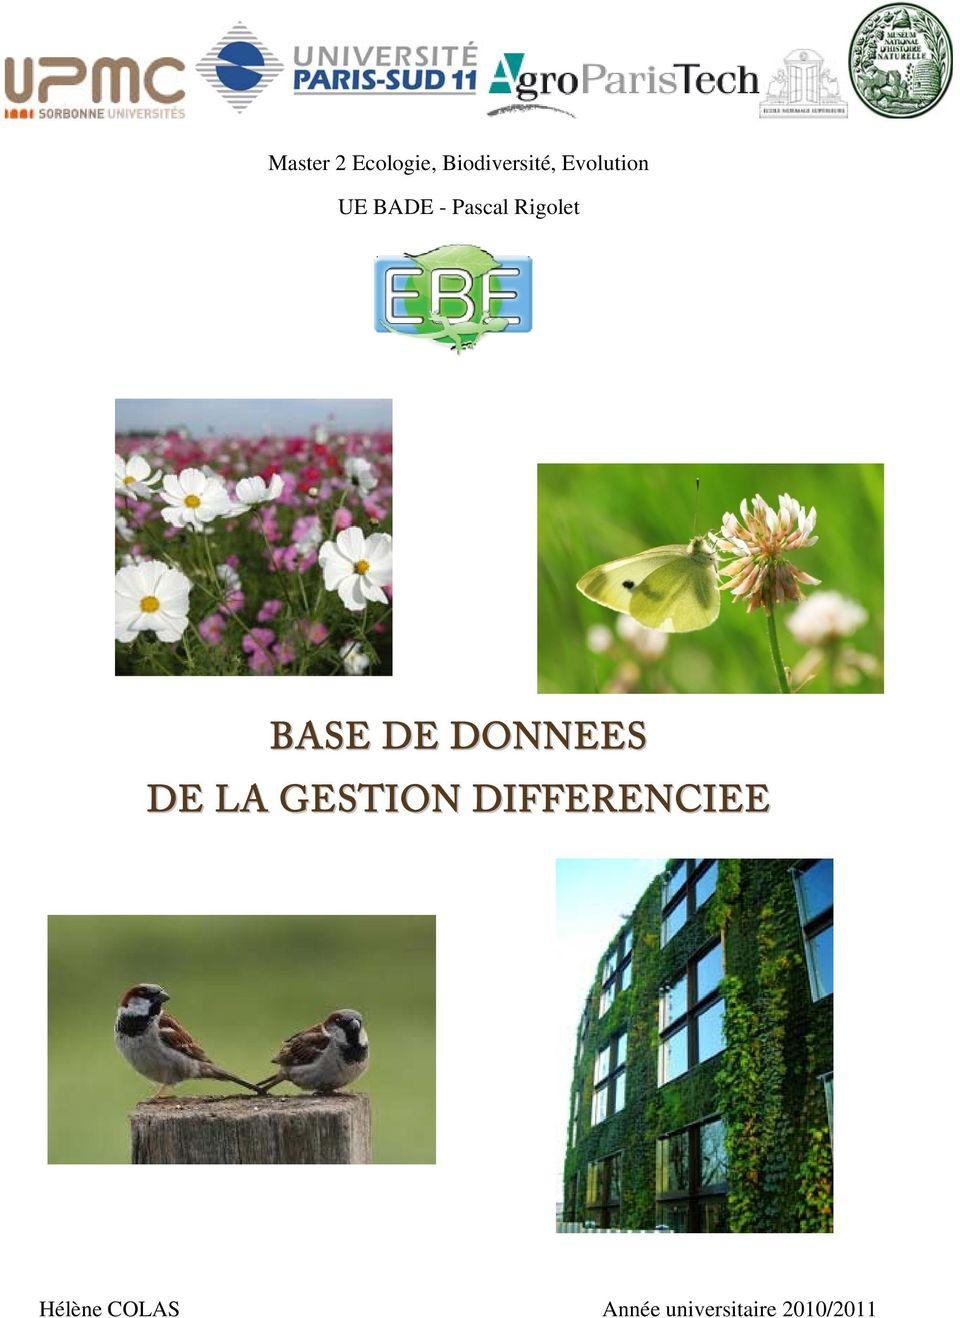 BASE DE DONNEES DE LA GESTION